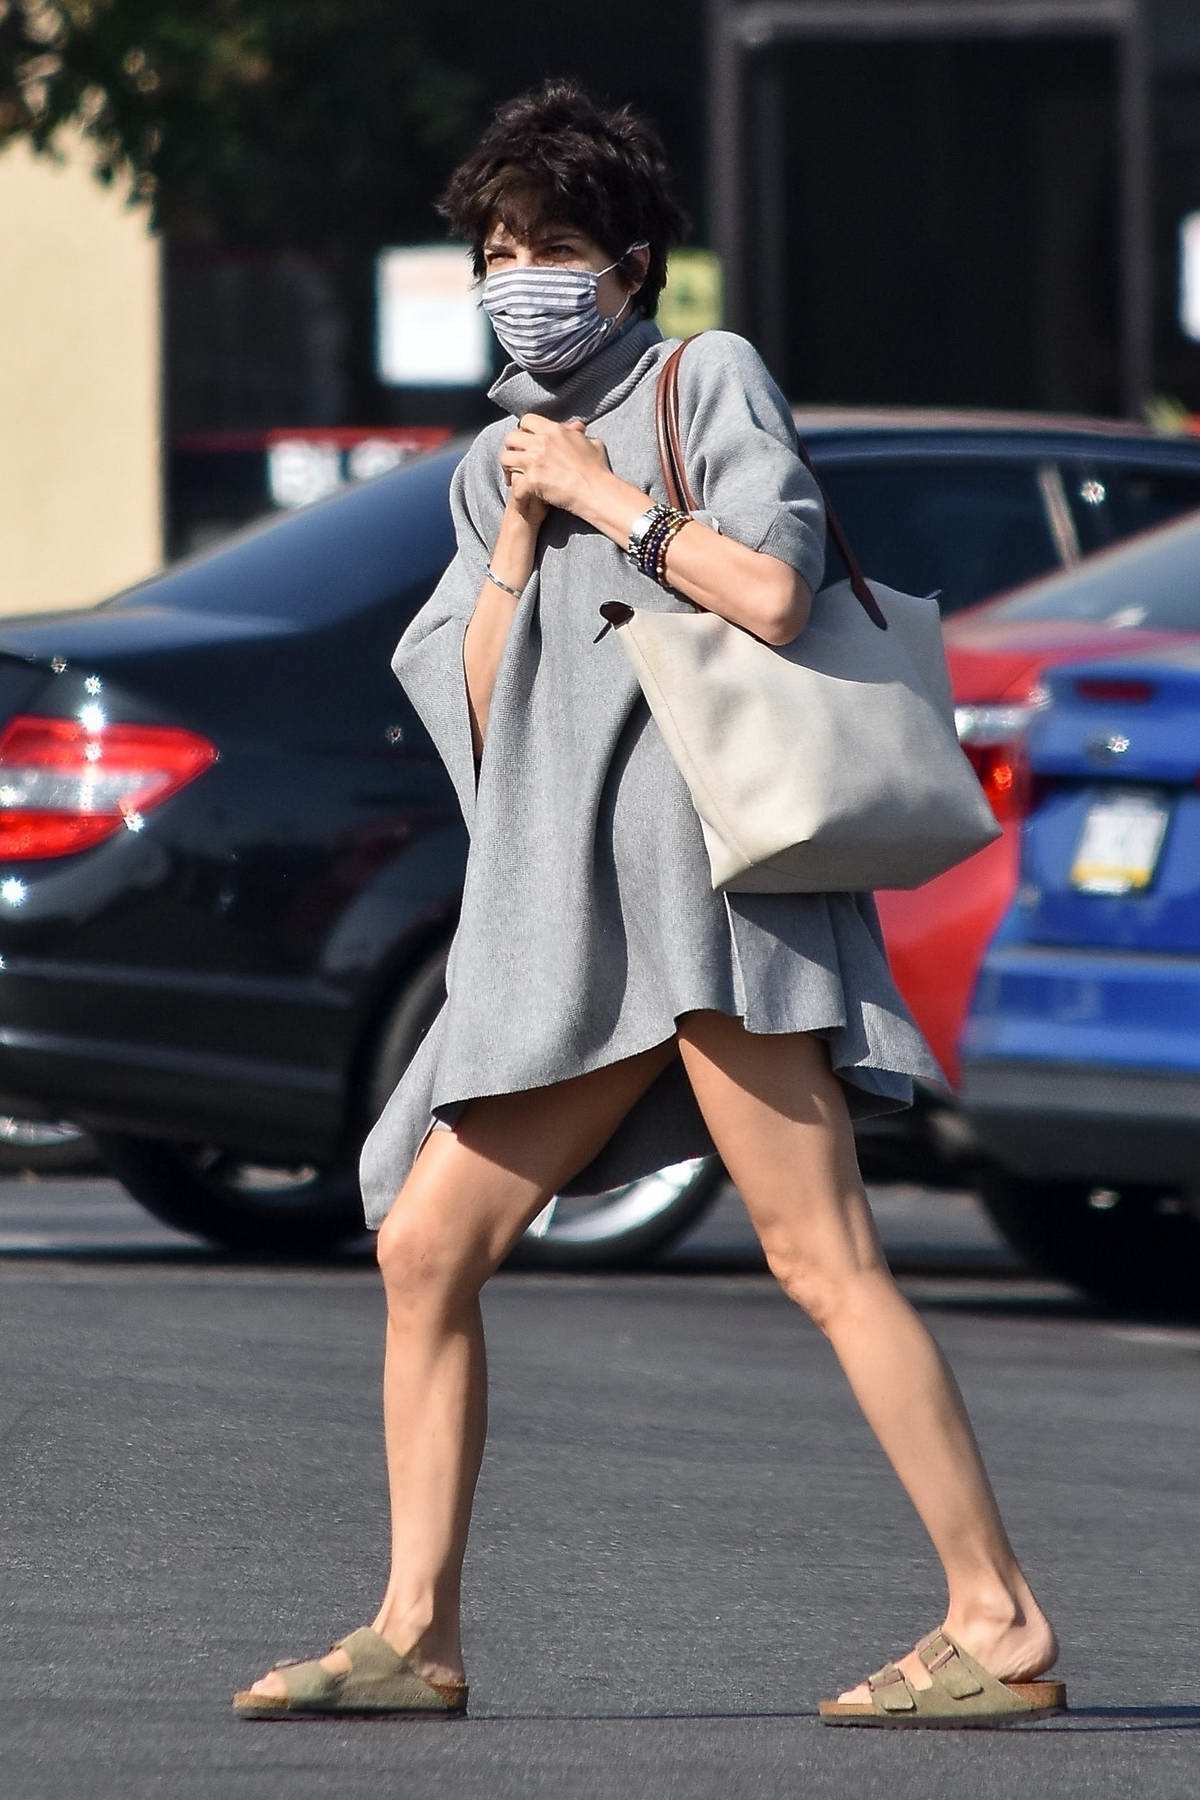 Selma Blair looks great in a gray sweater dress while making a grocery run at Trader Joes in Studio City, California